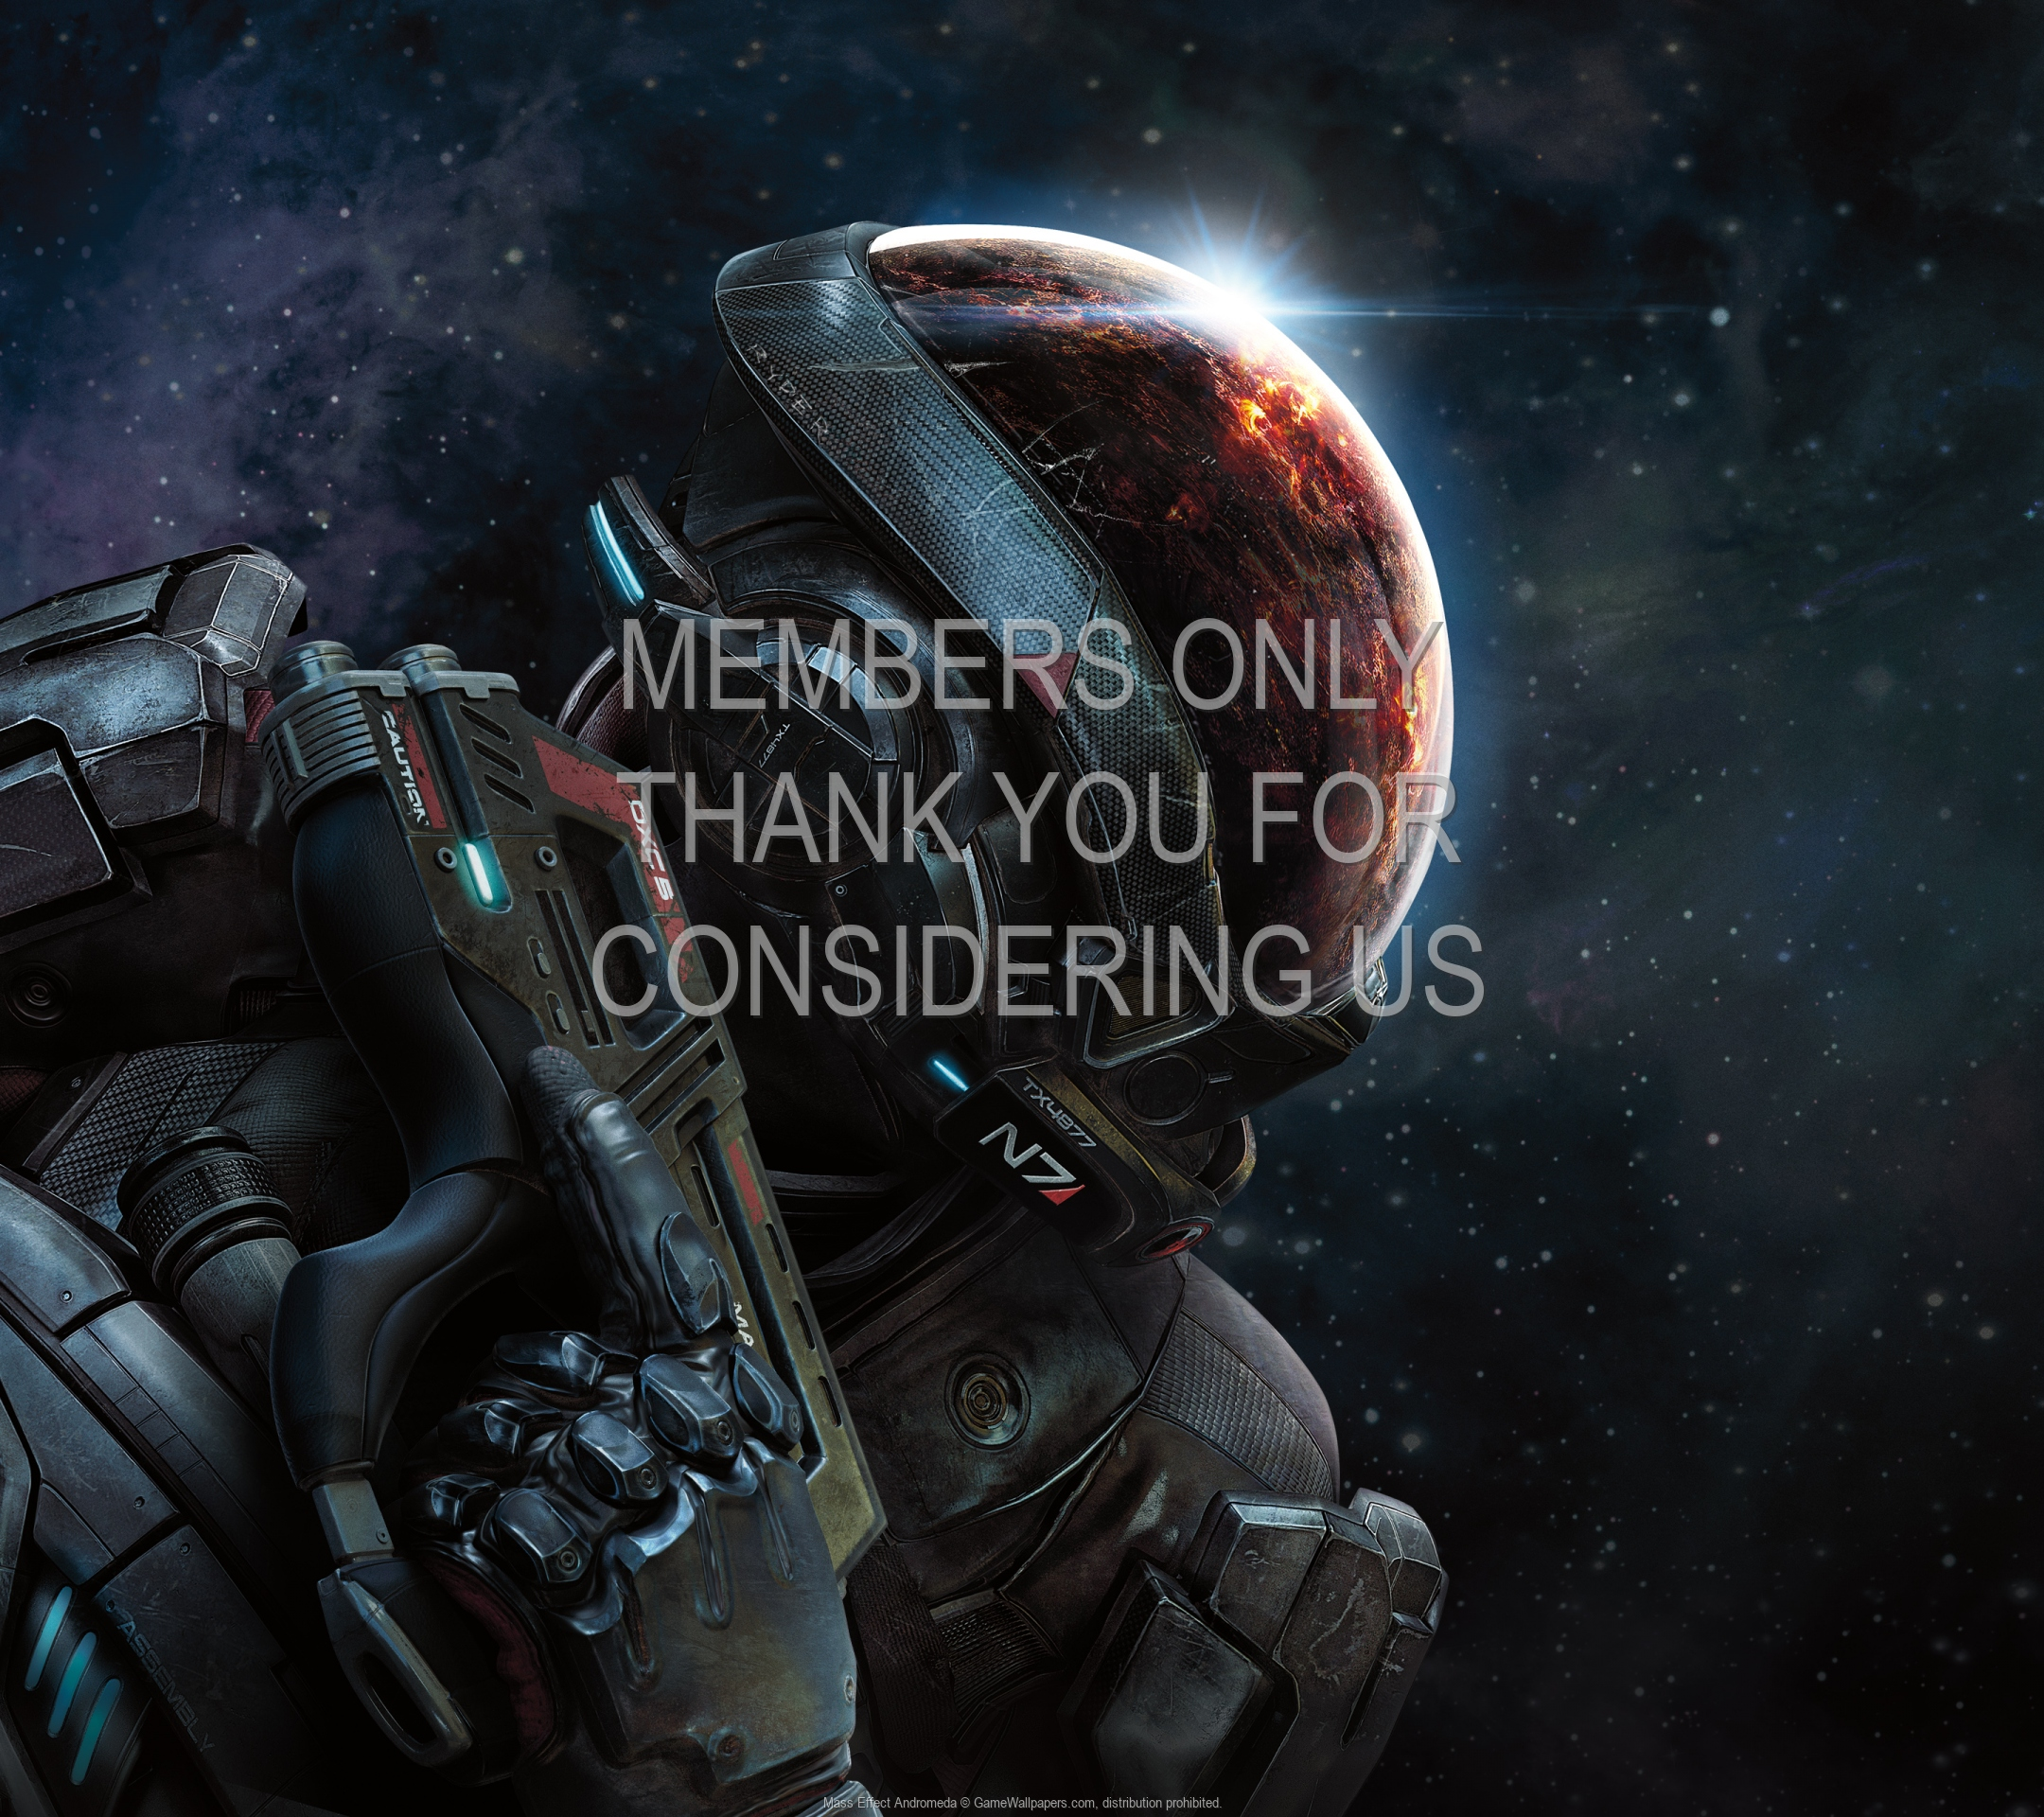 Mass Effect: Andromeda 1920x1080 Mobile wallpaper or background 01